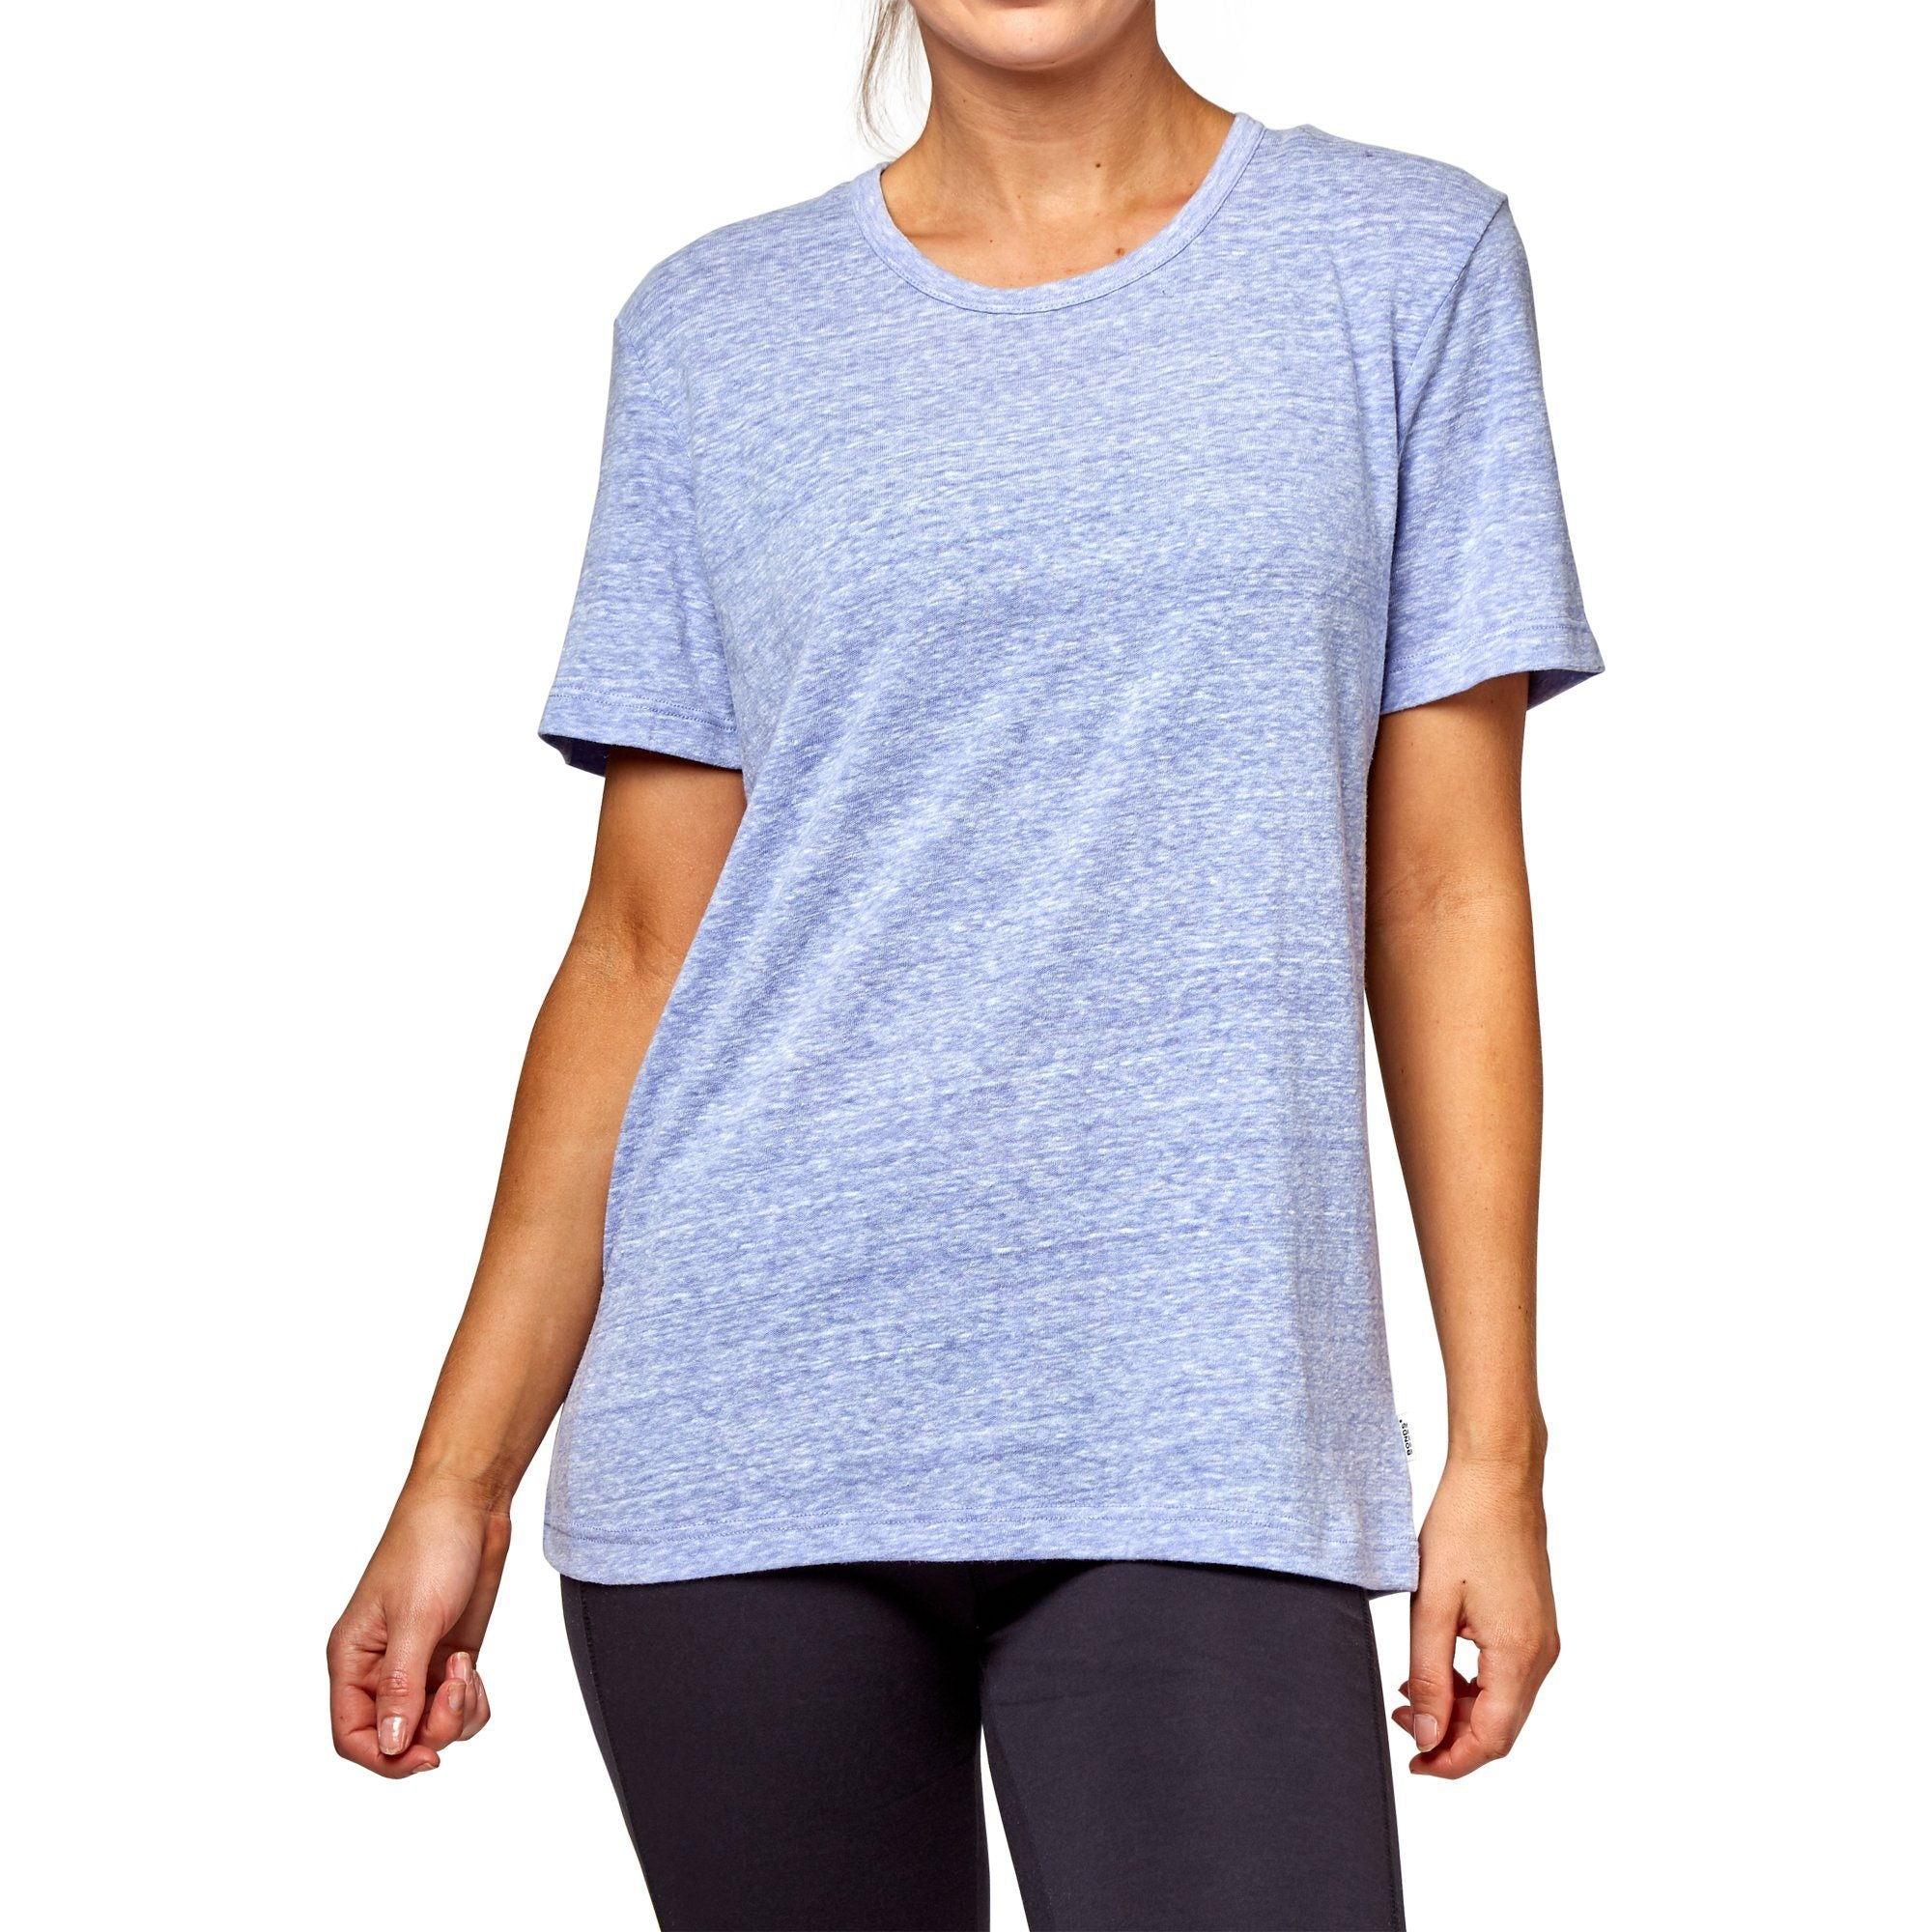 Bonds Women's Triblend Crew Tee - Larkspur Apparel Bonds  (2019304374331)